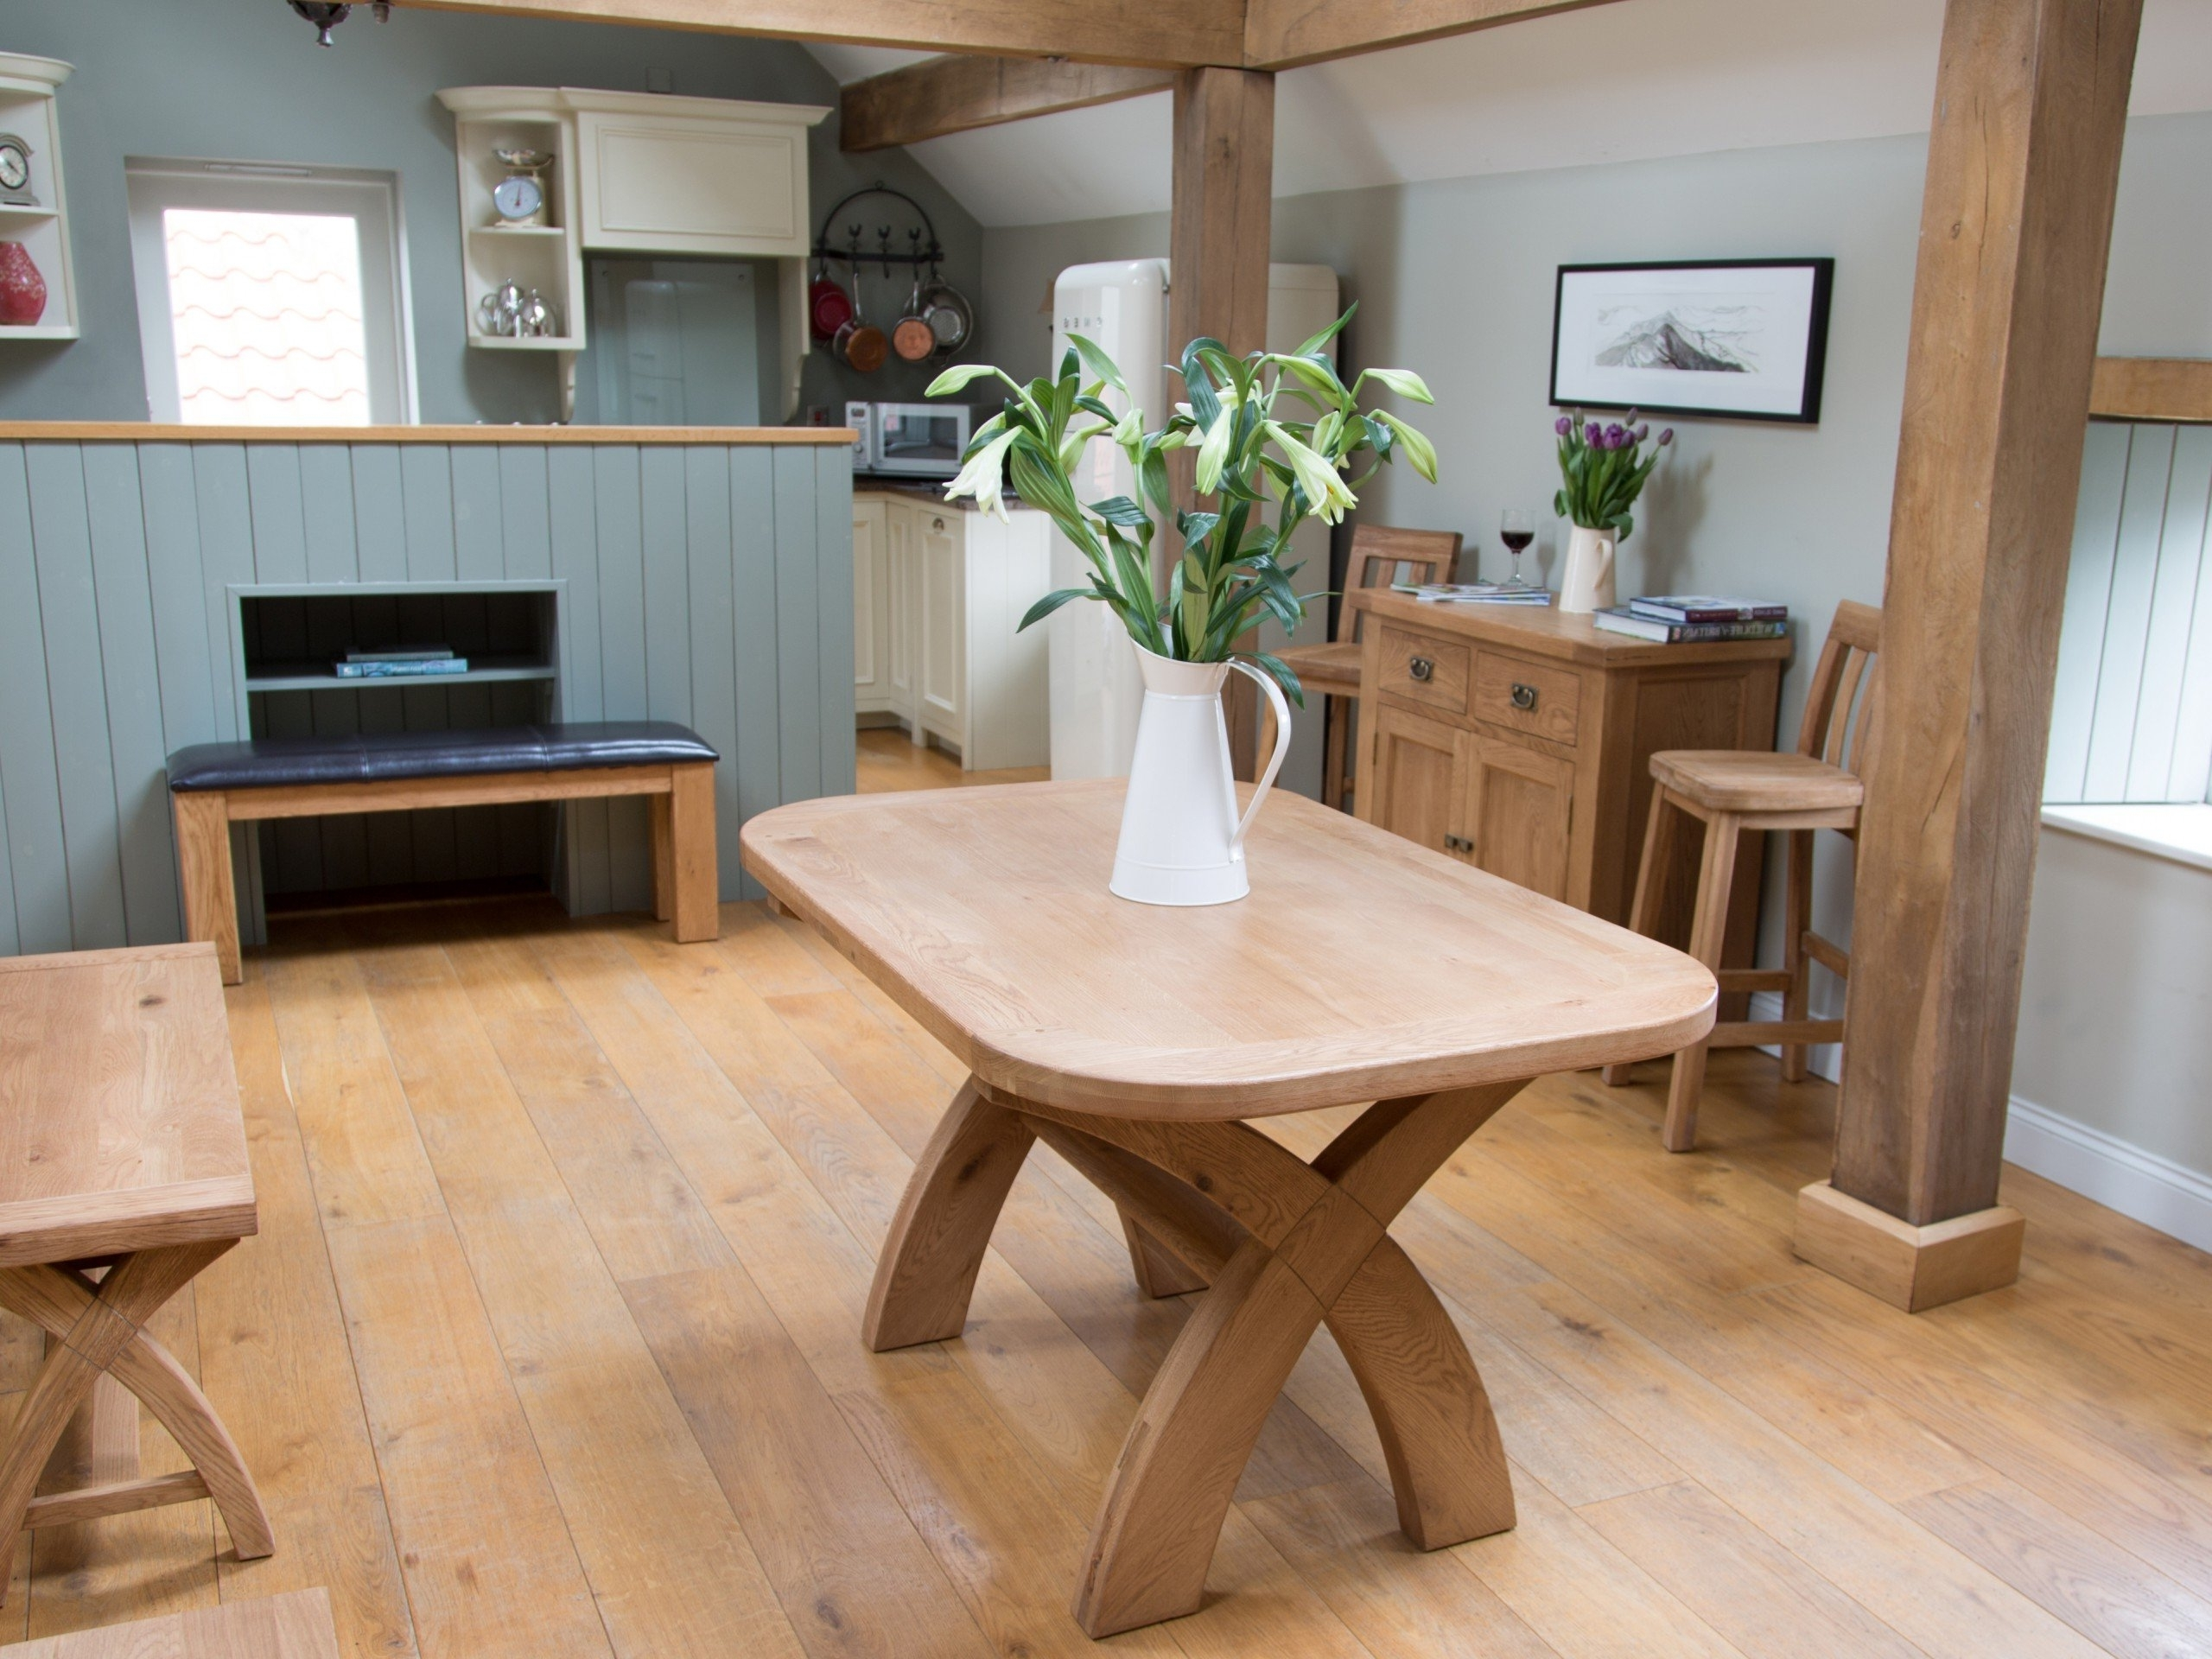 Extending 6 Seater Oak Dining Table Within Widely Used Oak Extending Dining Tables And 6 Chairs (View 20 of 25)